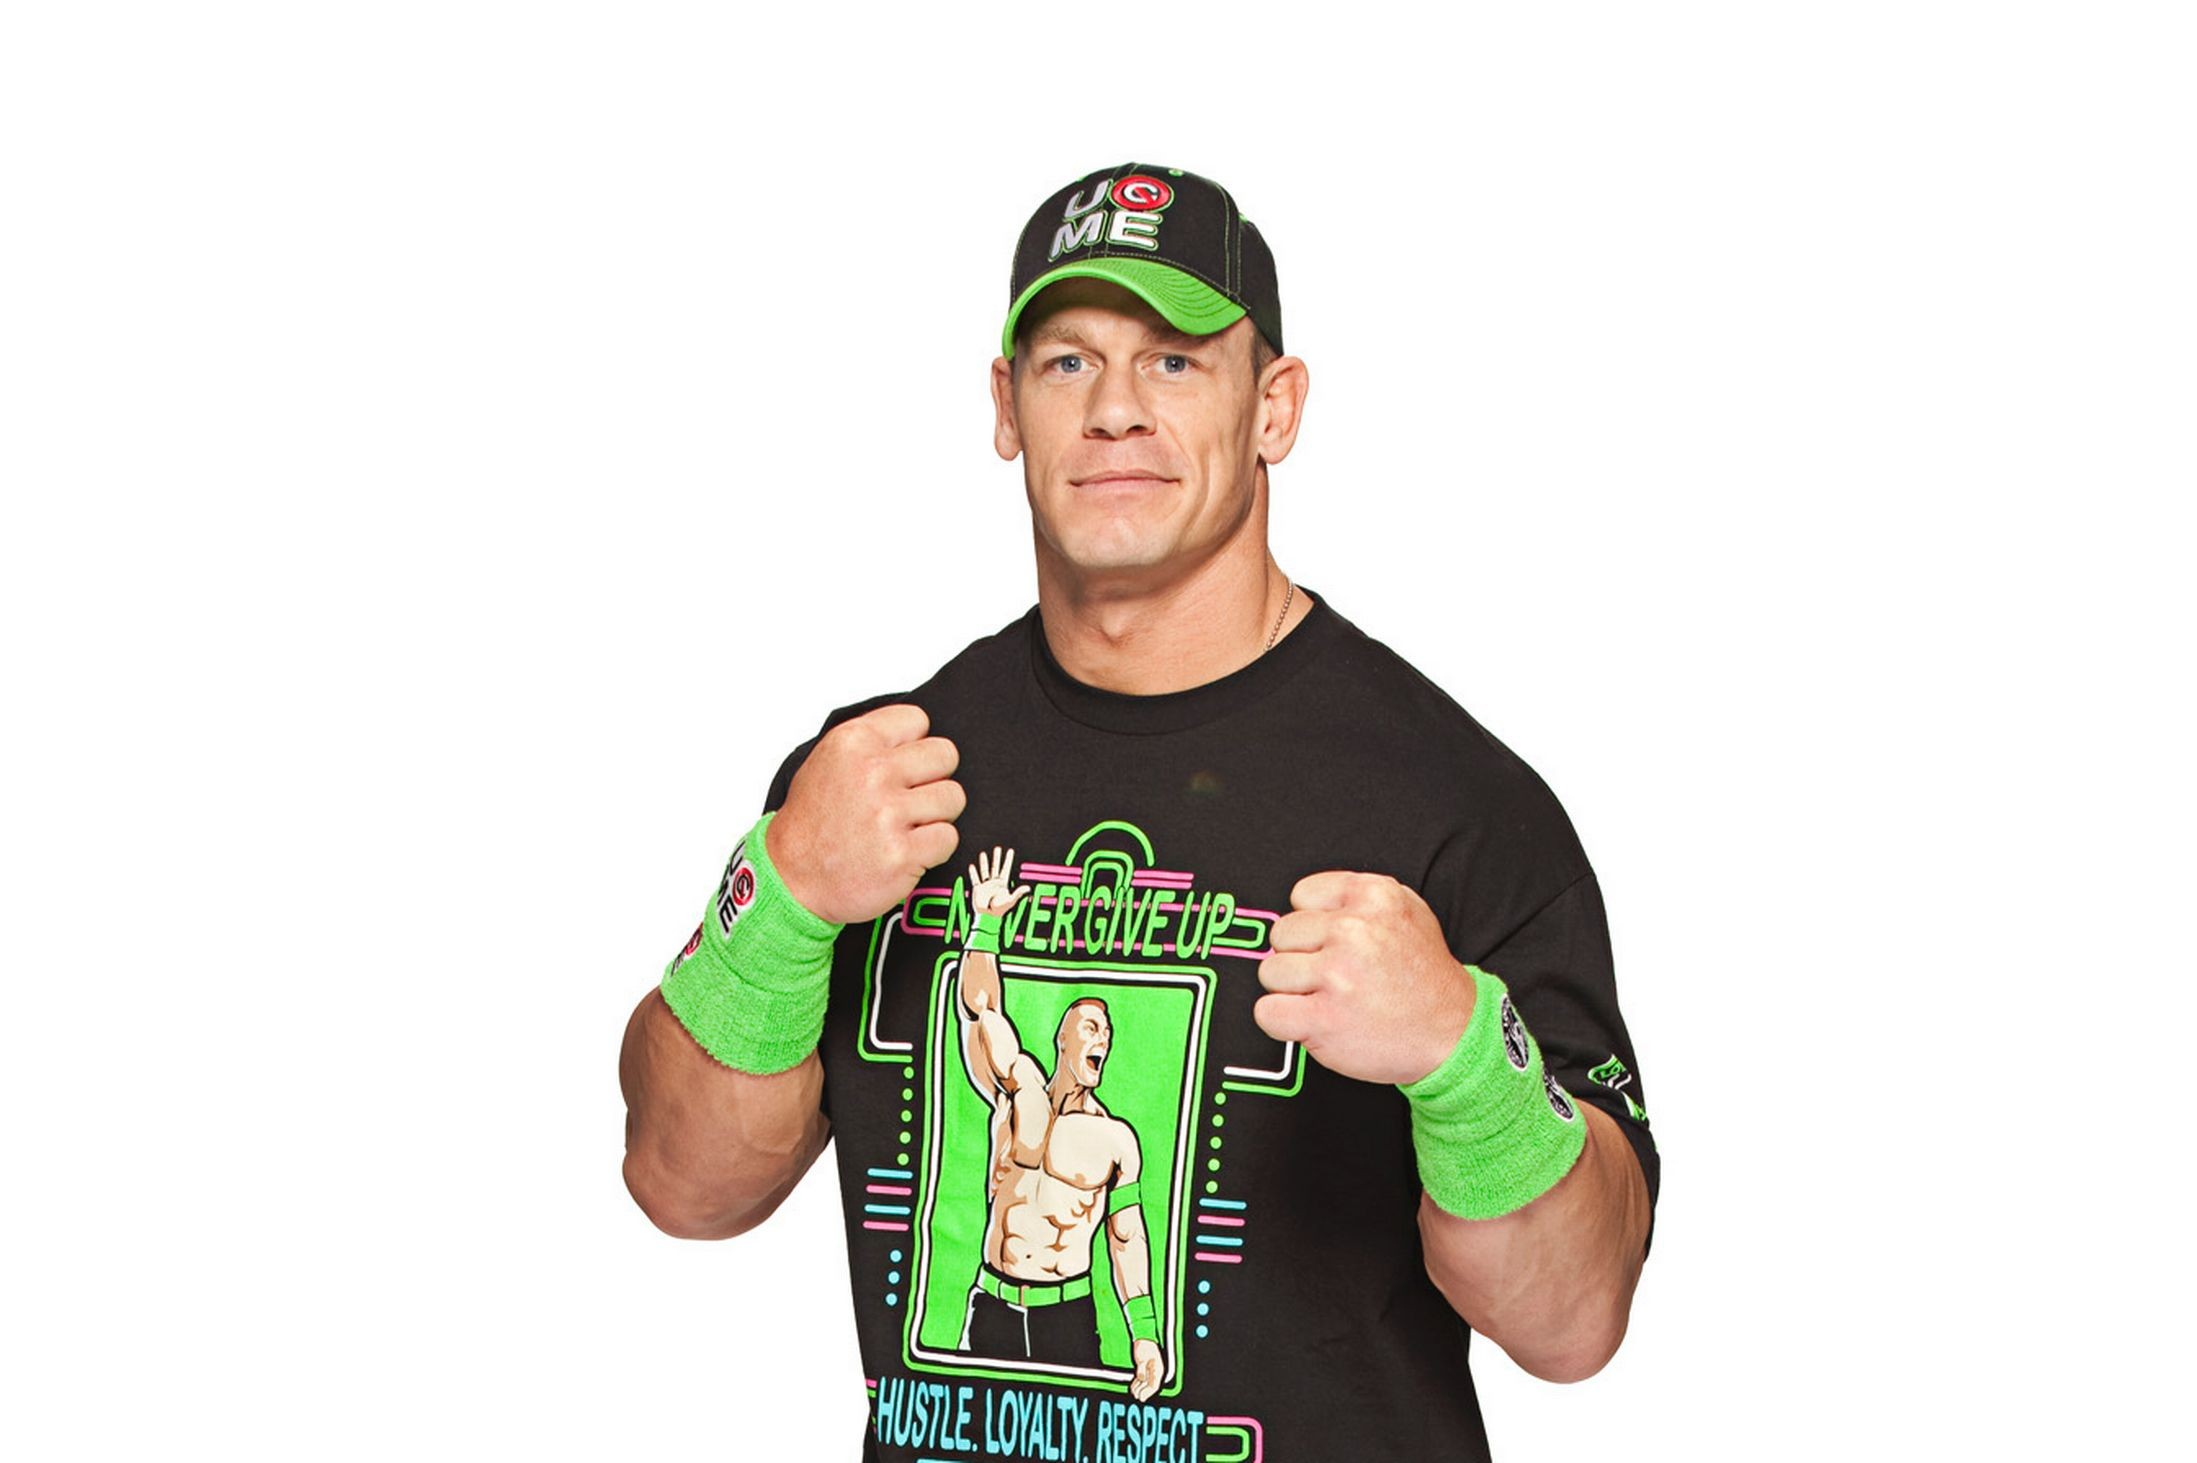 John Cena HD Wallpapers HD Wallpapers 2197x1463